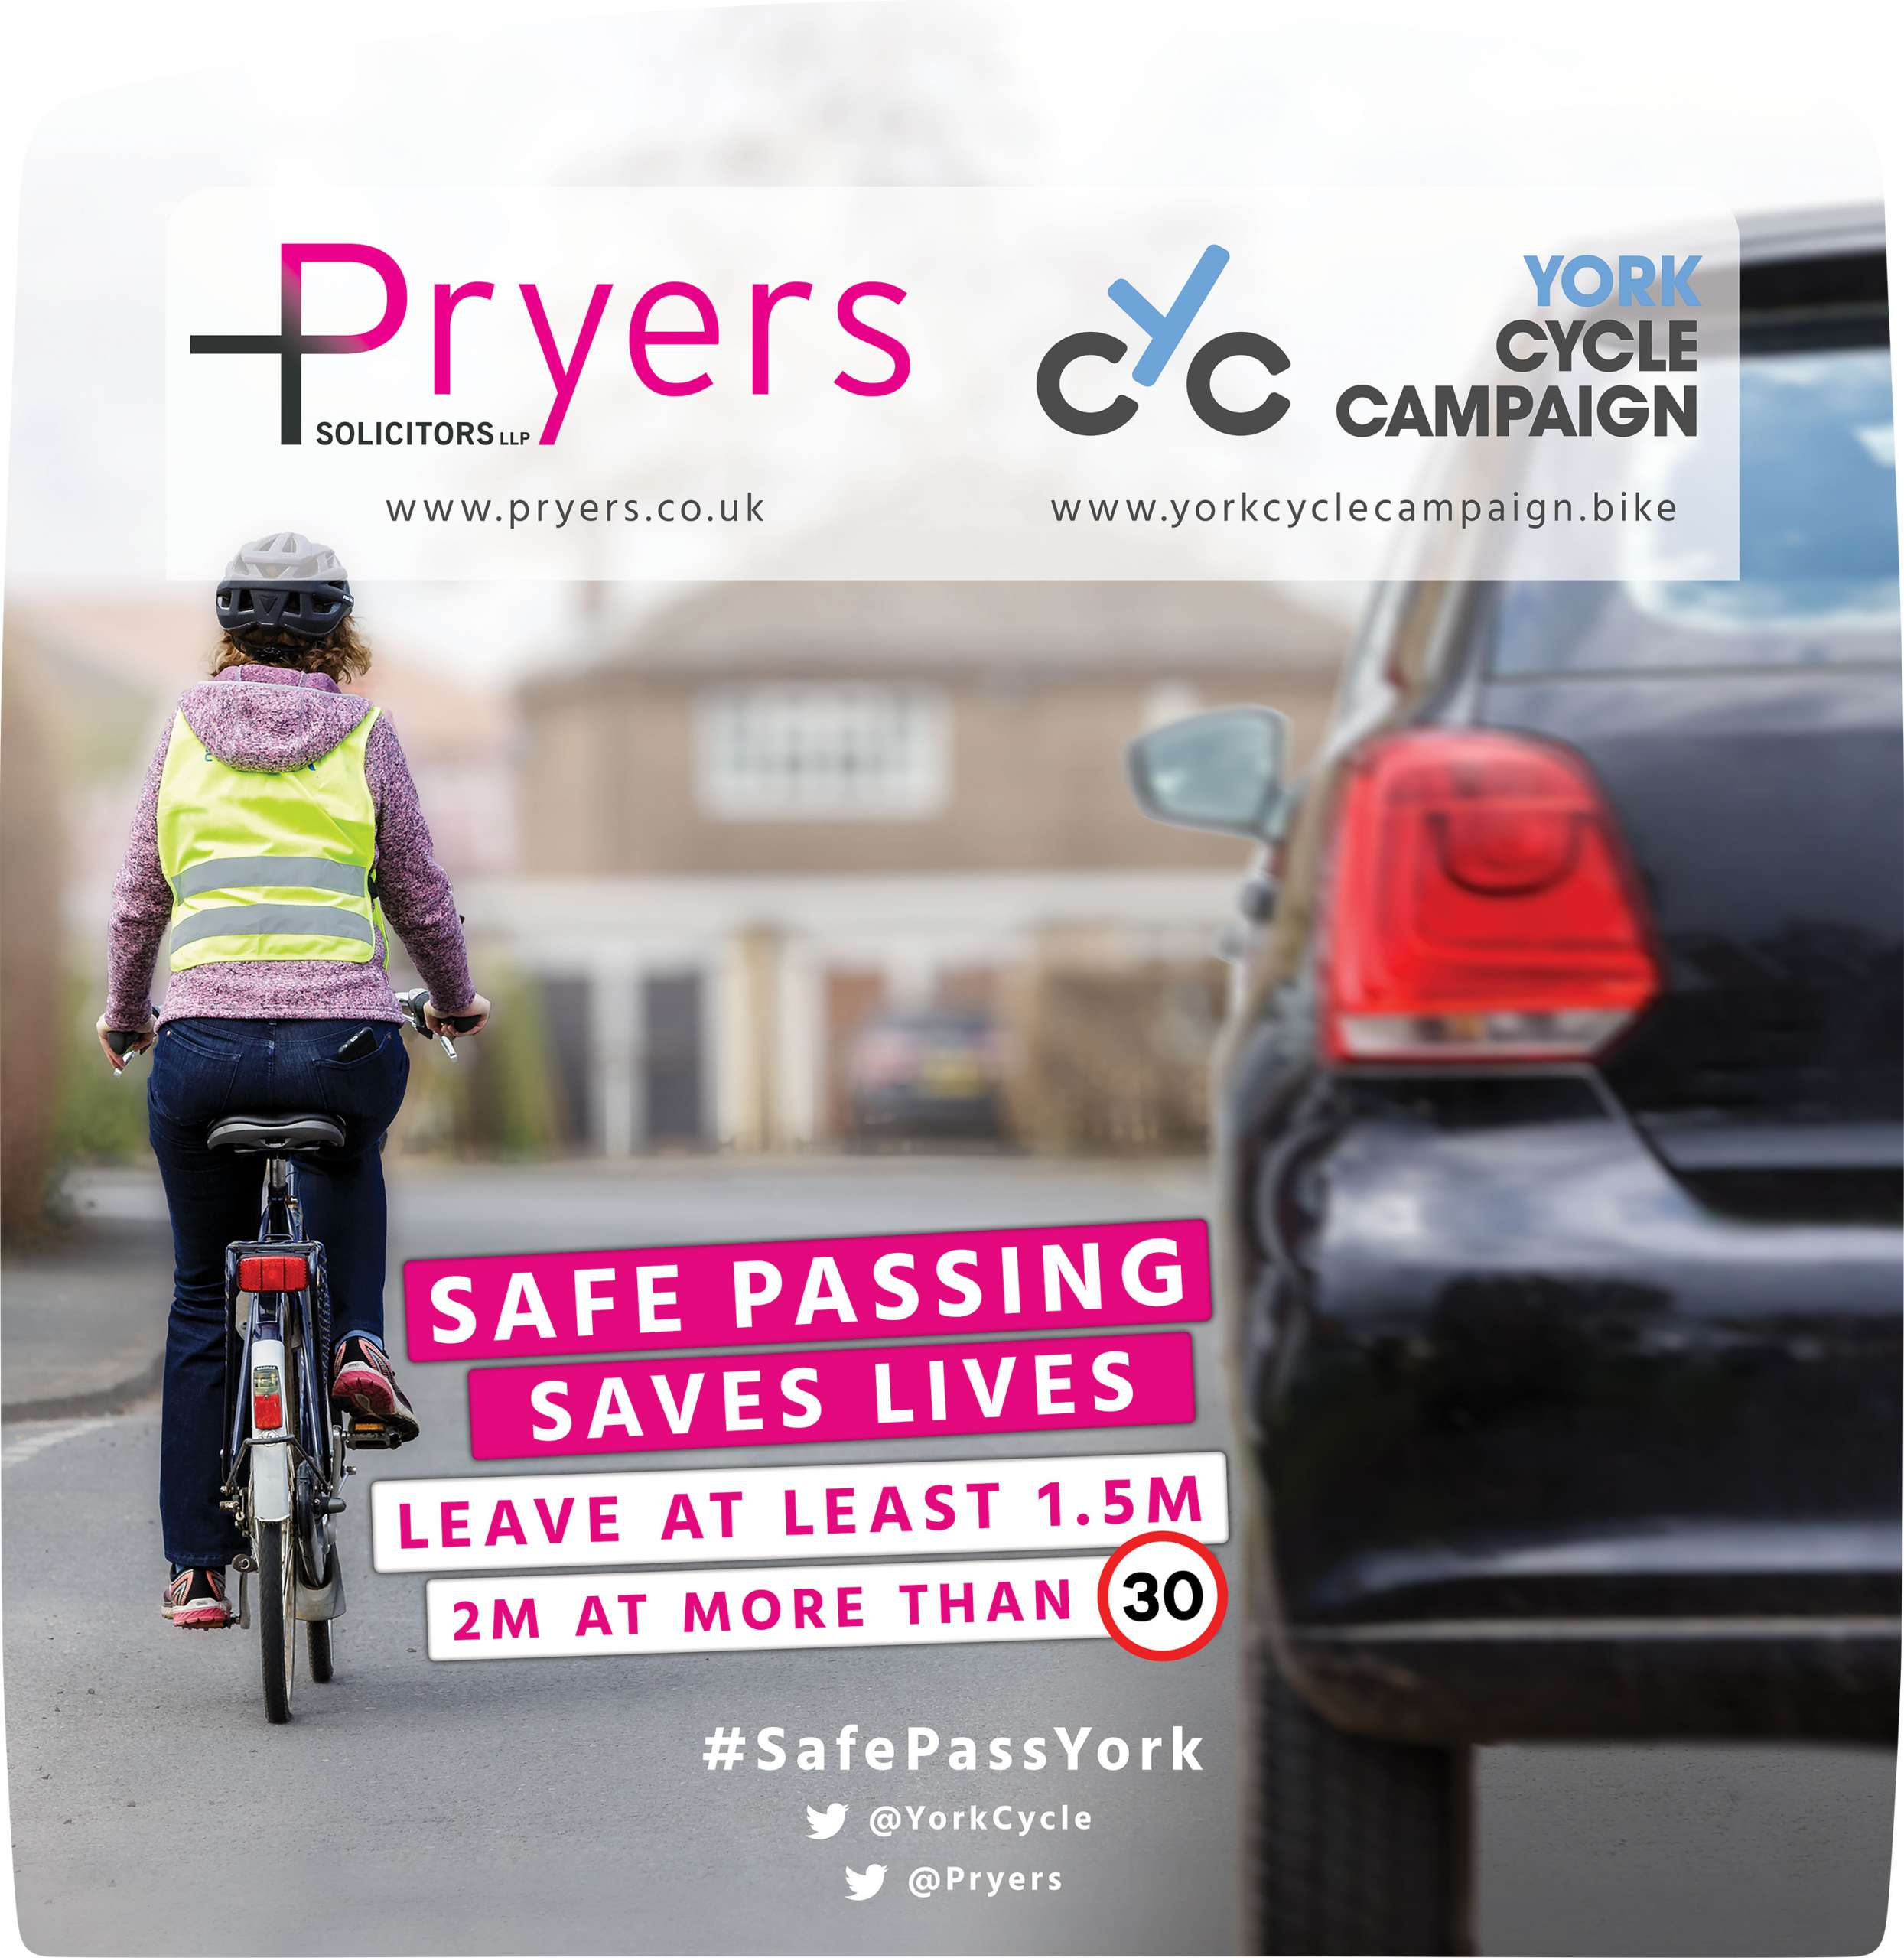 The design featuring in Pryers Solicitors ad York Cycle Campaigns safe passing campaign.